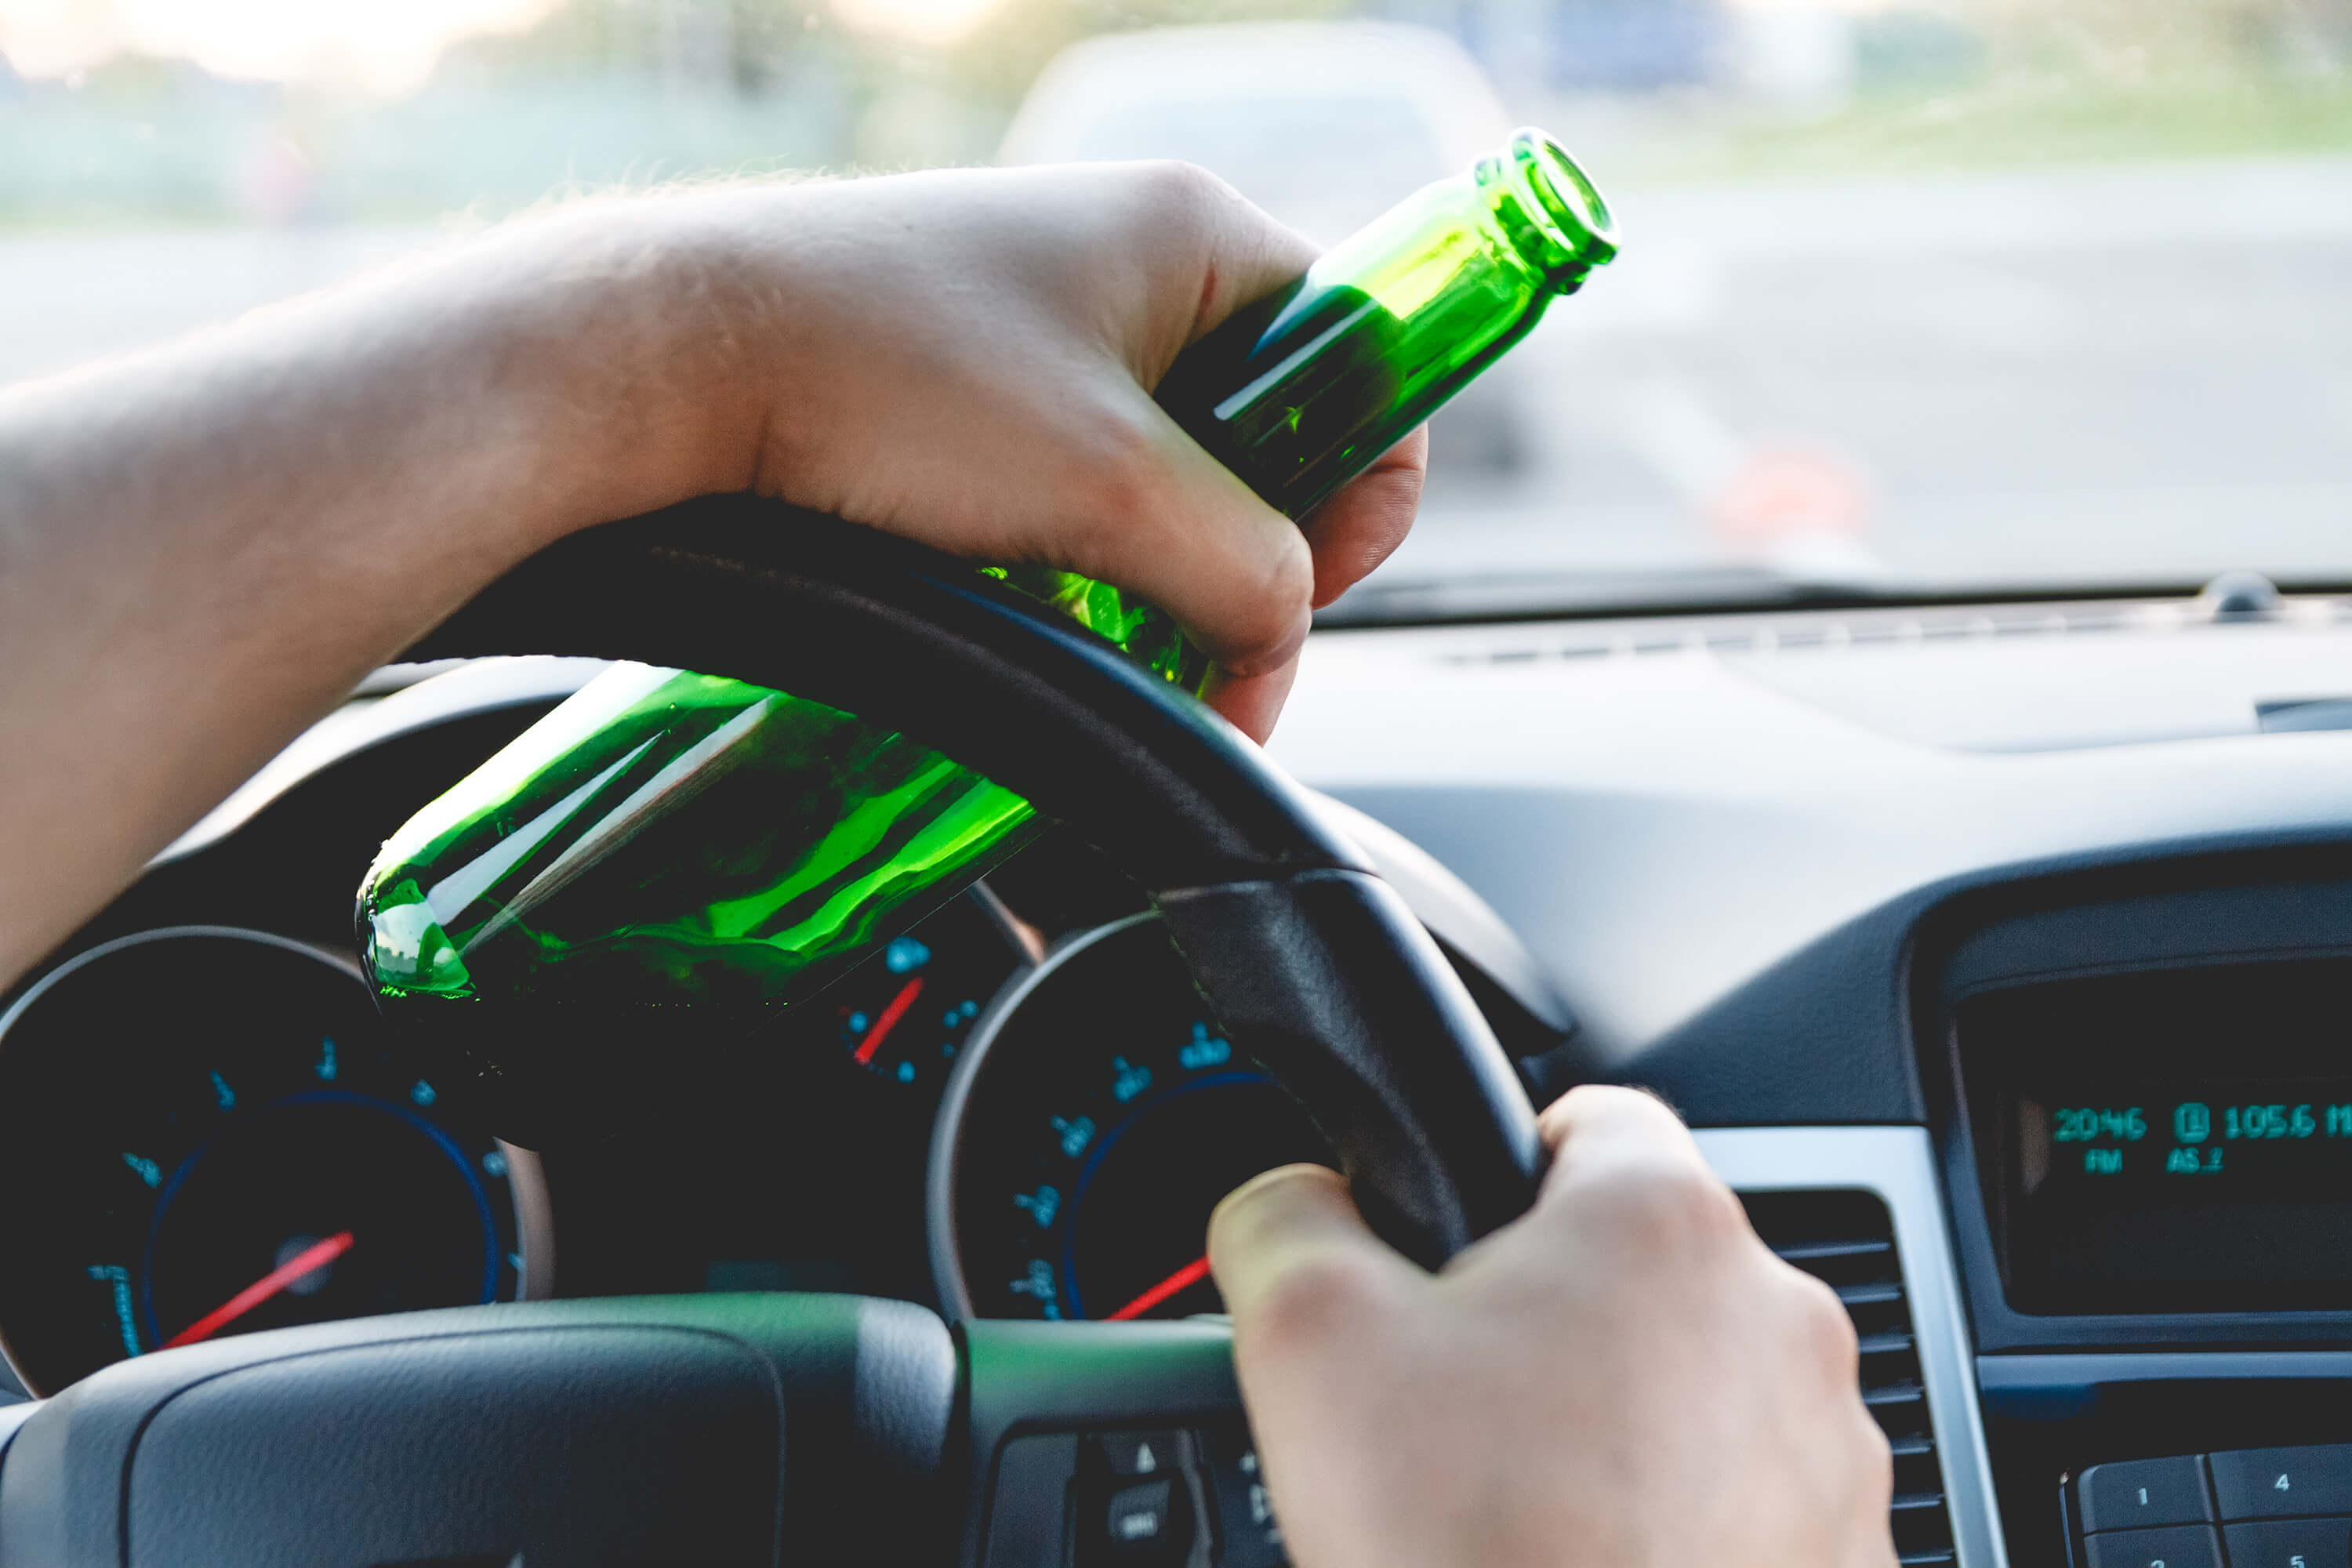 Driving with a beer bottle - DUI and leaving the scene of an accident